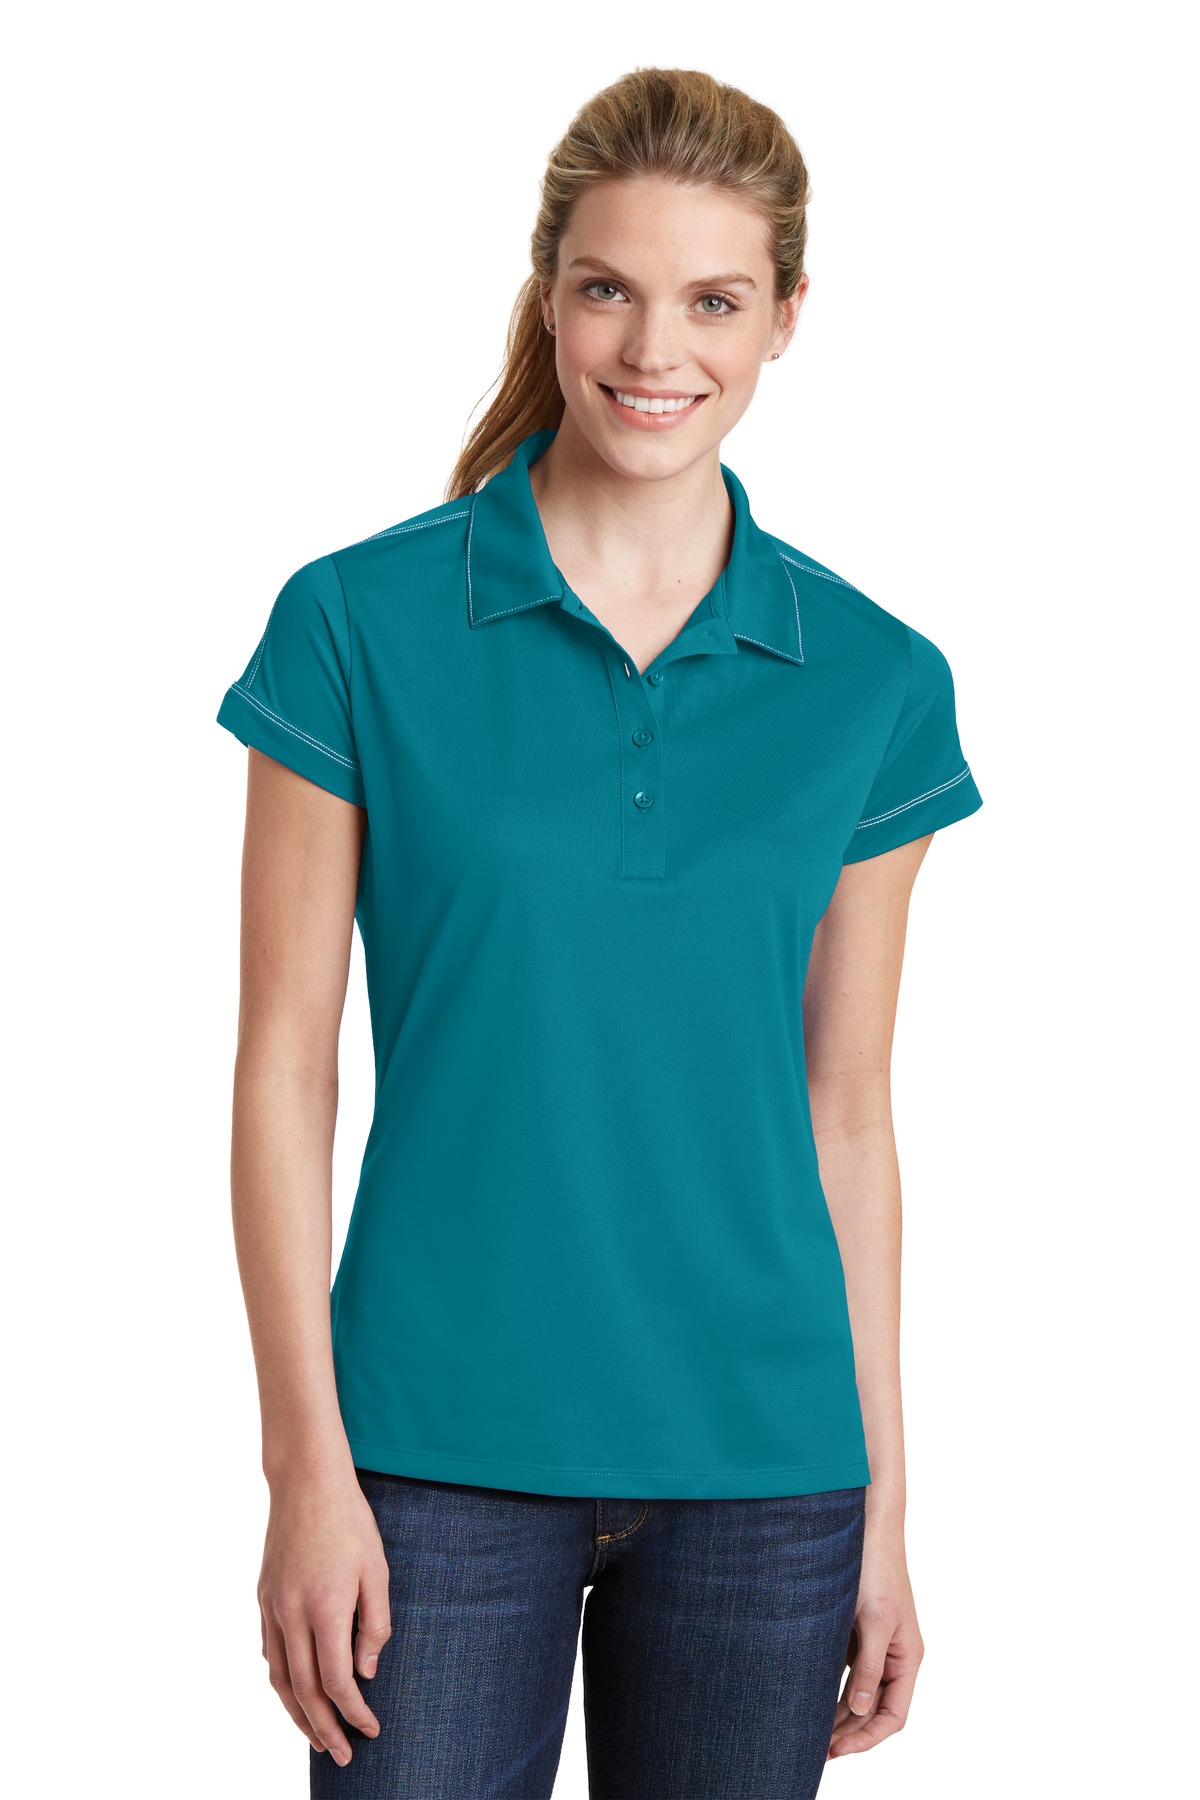 Sport-Tek ®  Ladies Contrast Stitch Micropique Sport-Wick® Polo. LST659 - Tropic Blue